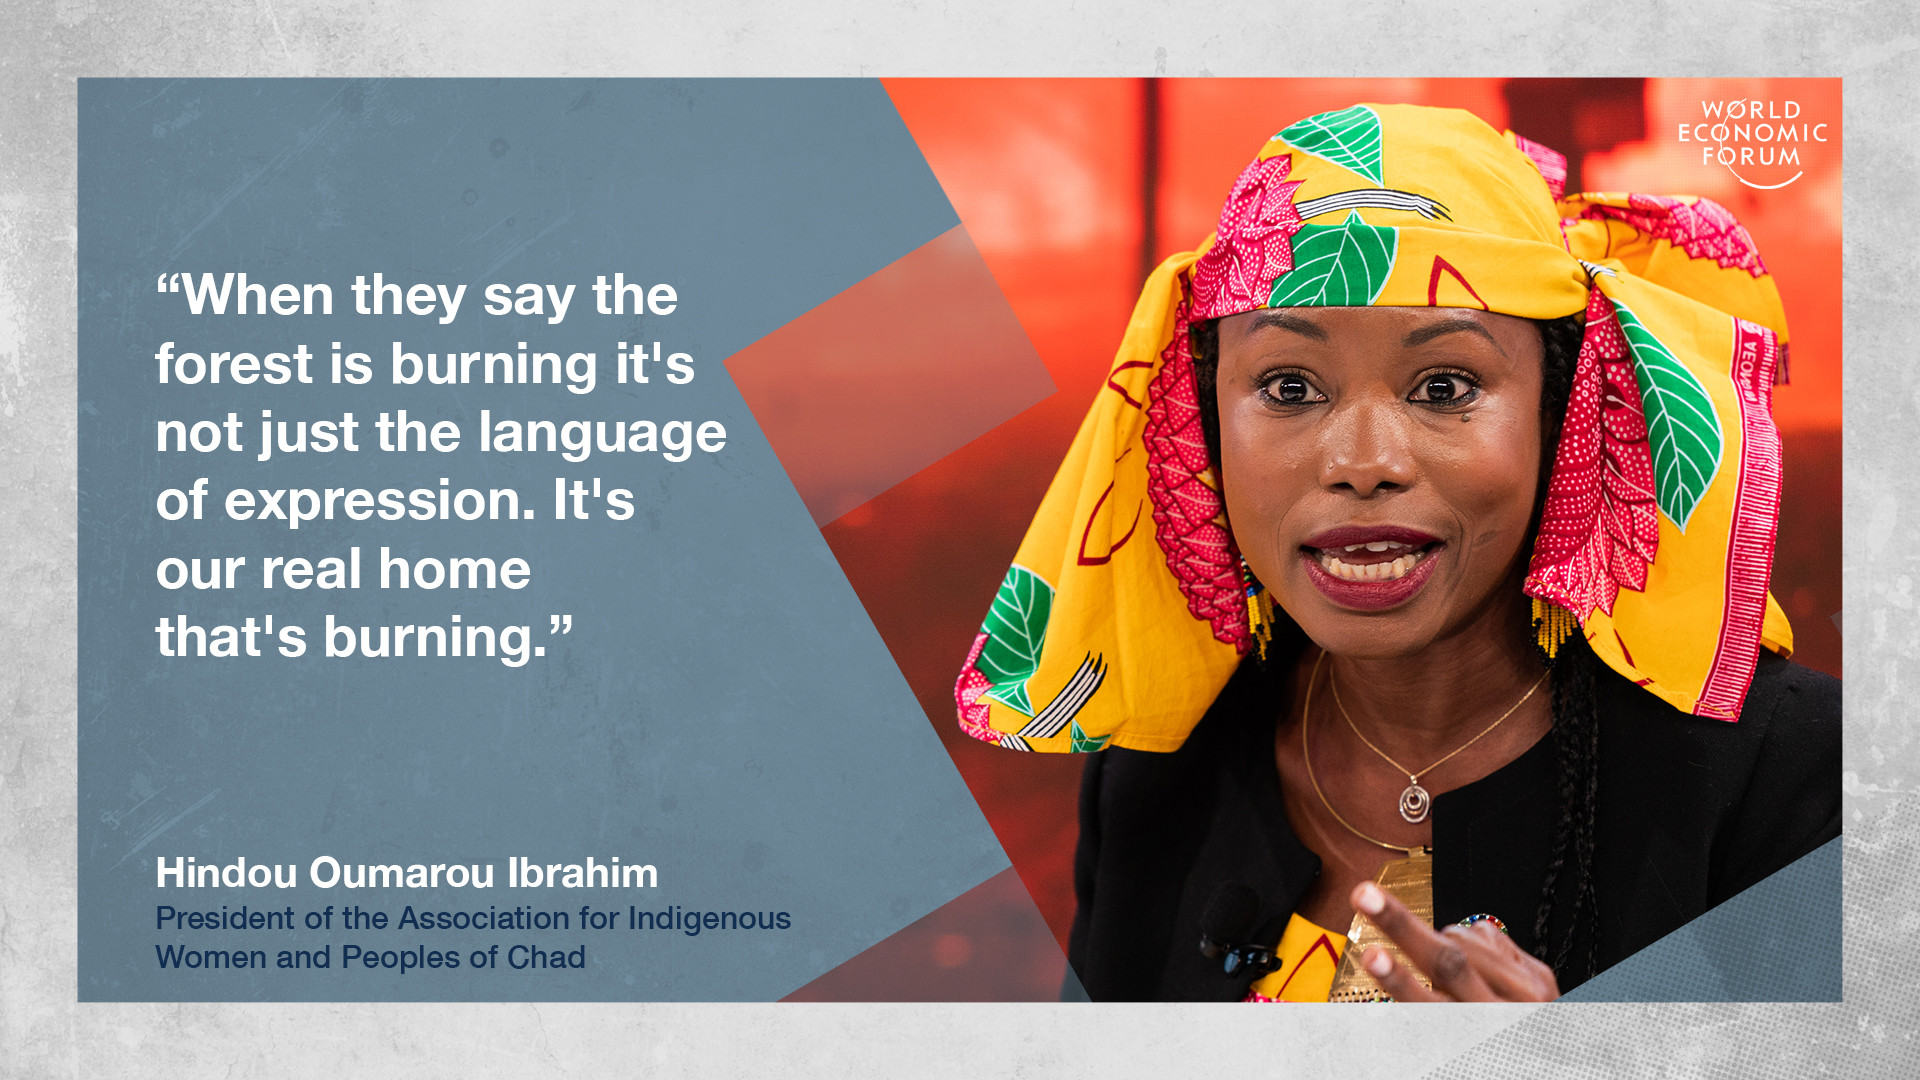 Hindou Oumarou Ibrahim to Davos on climate change impact on the lives of indigenous people